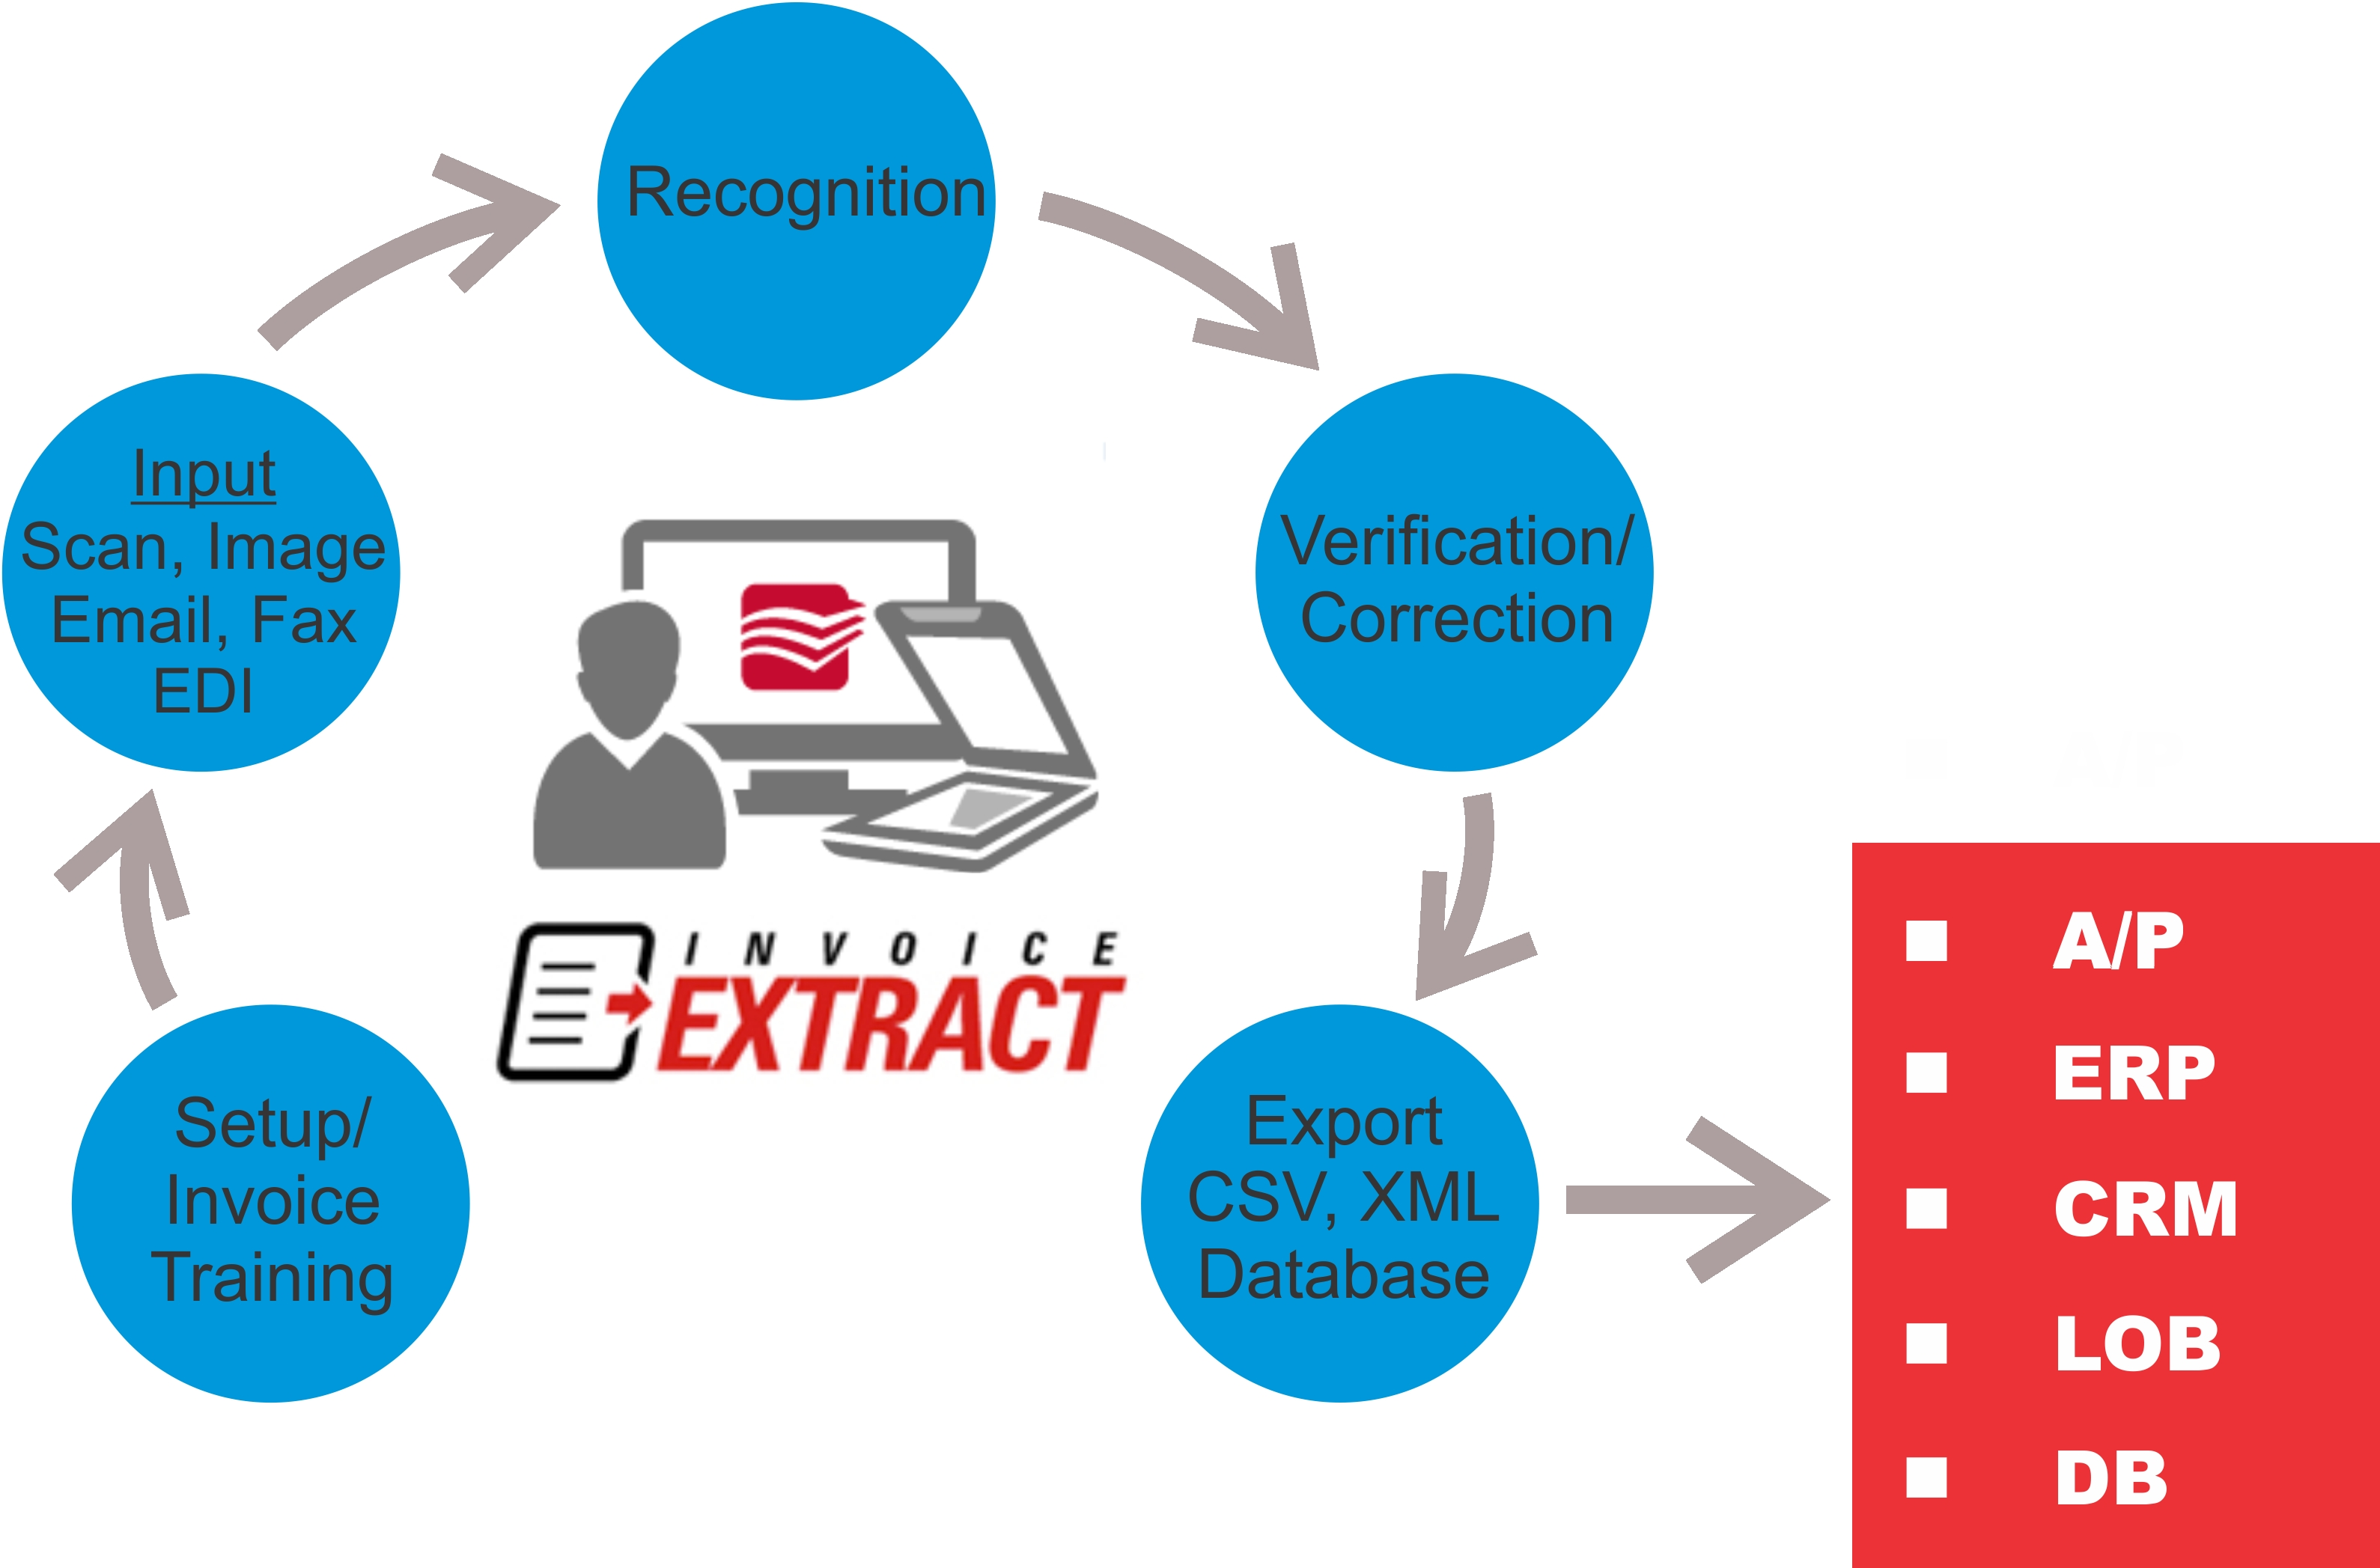 ocr invoice processing service vancouver electronic data capture invoice processing software